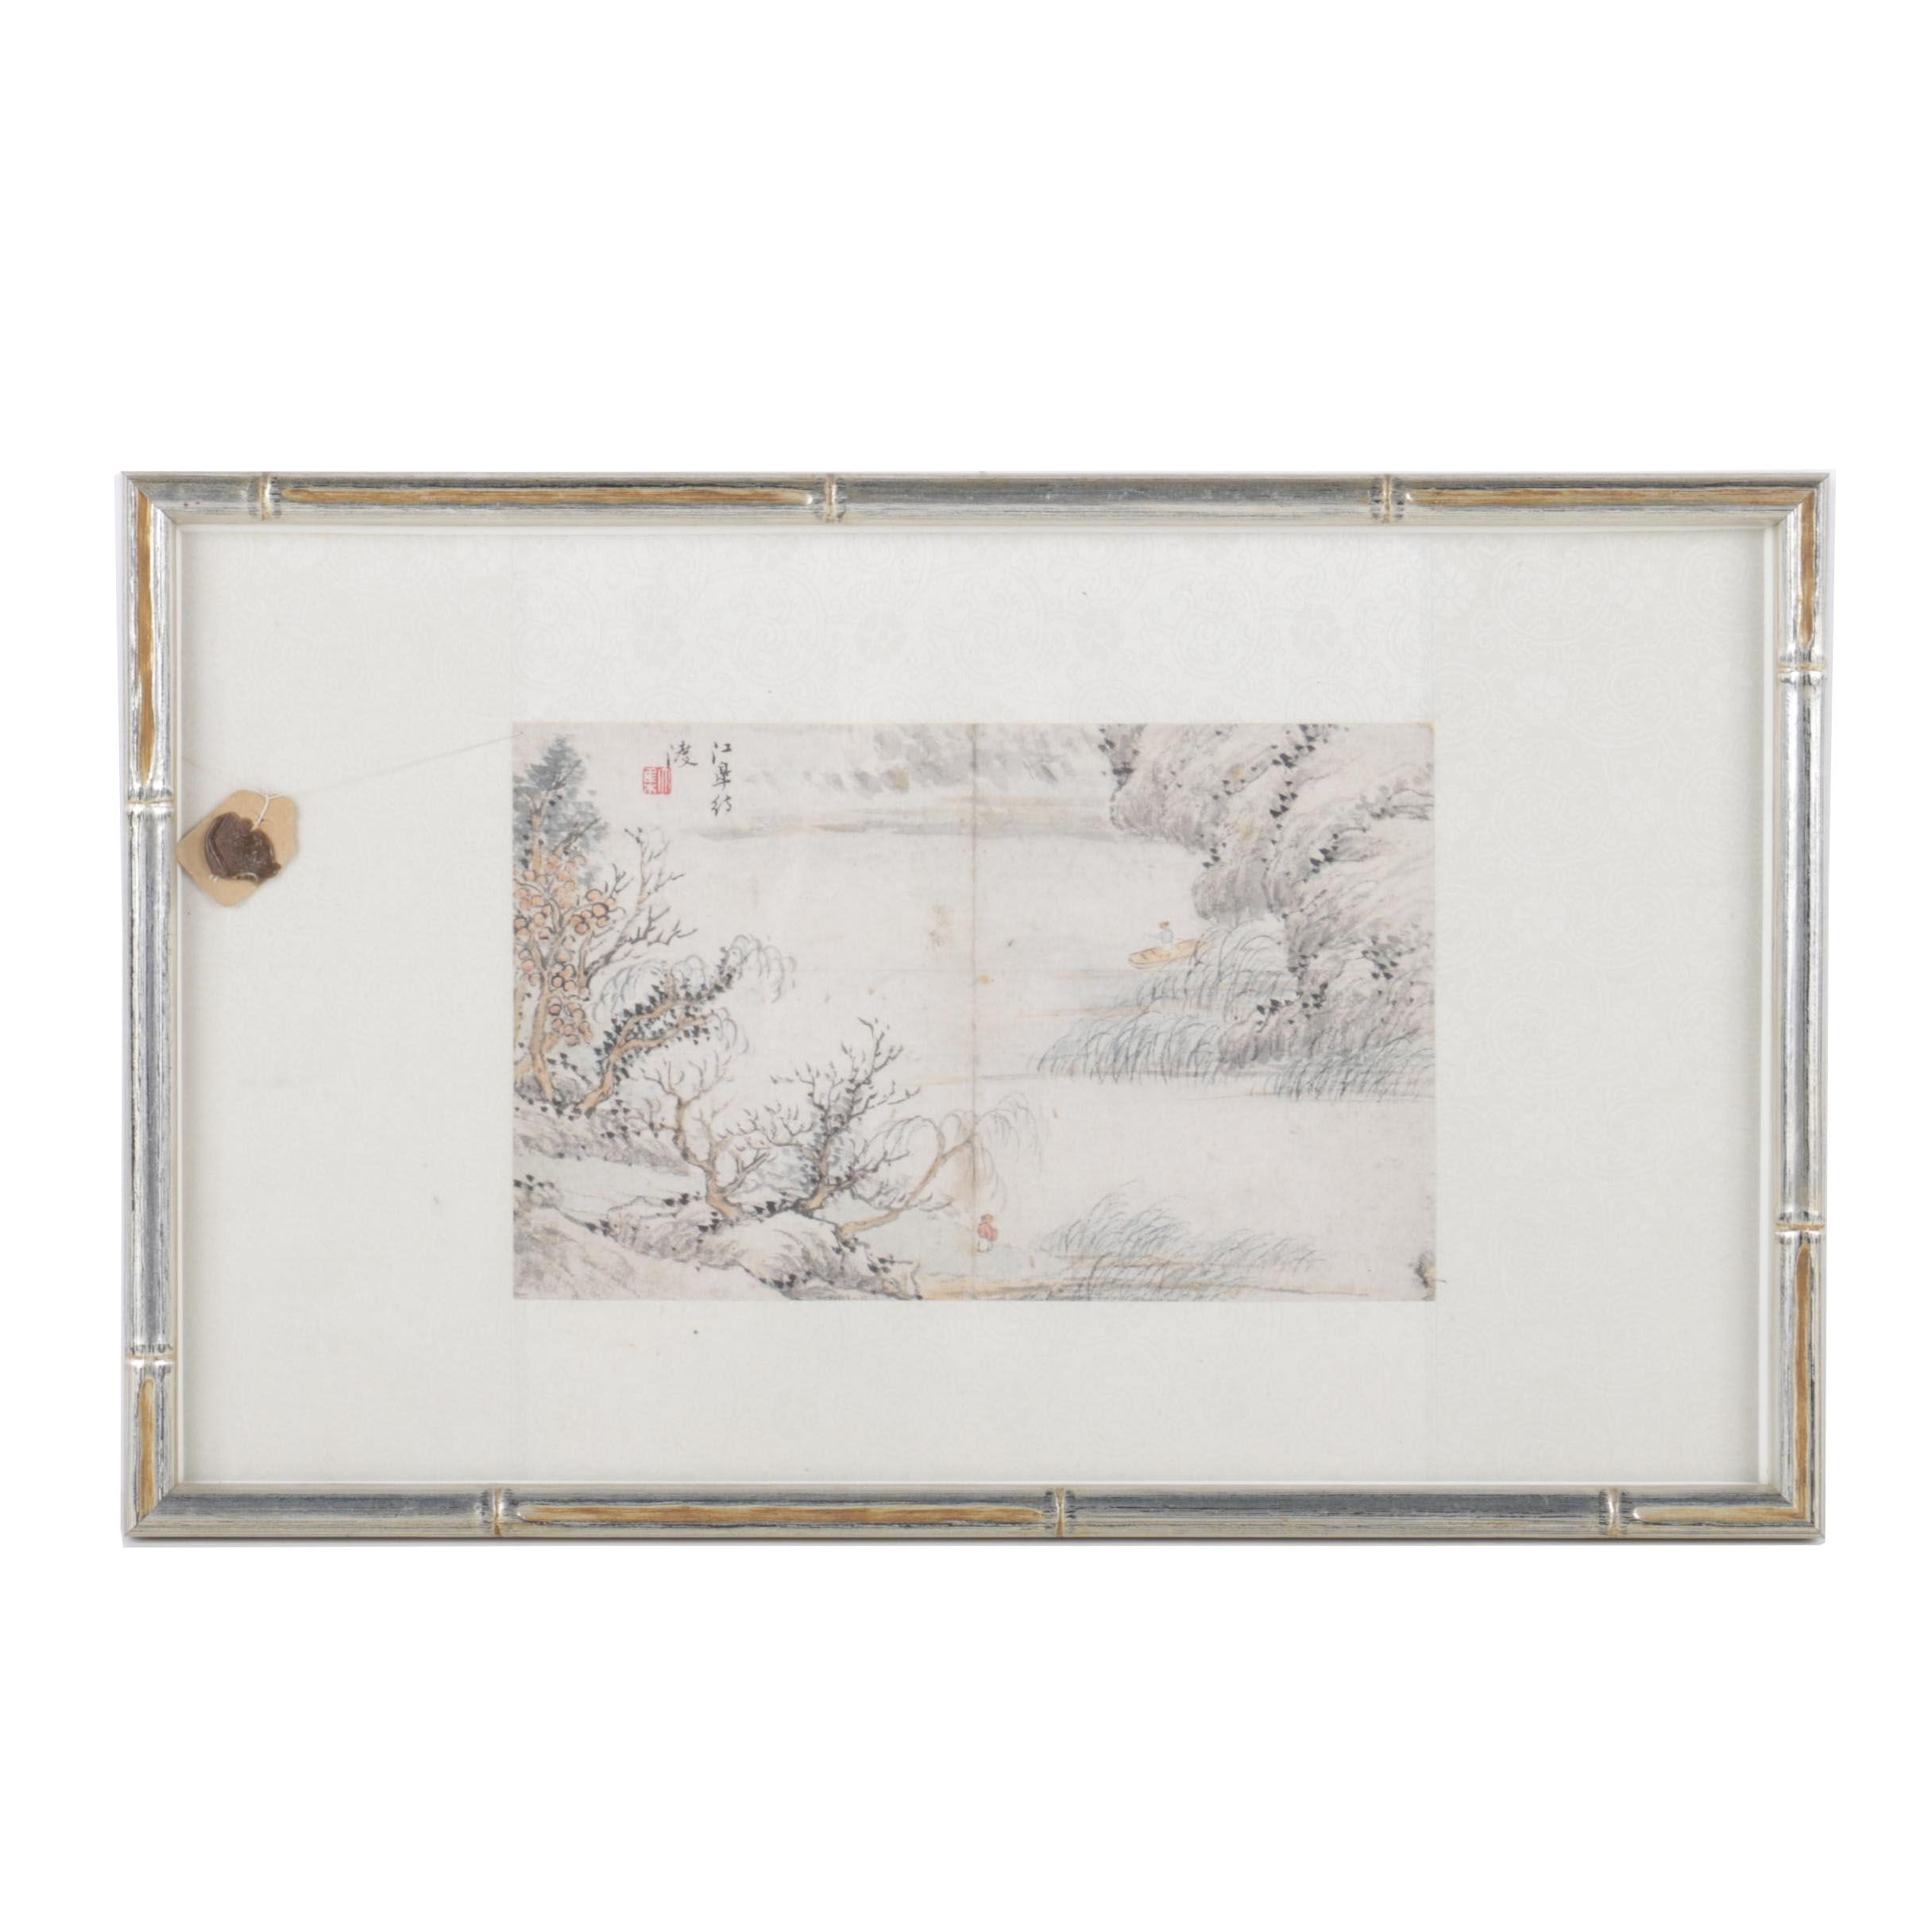 East Asian Style Watercolor Painting on Paper of Landscape